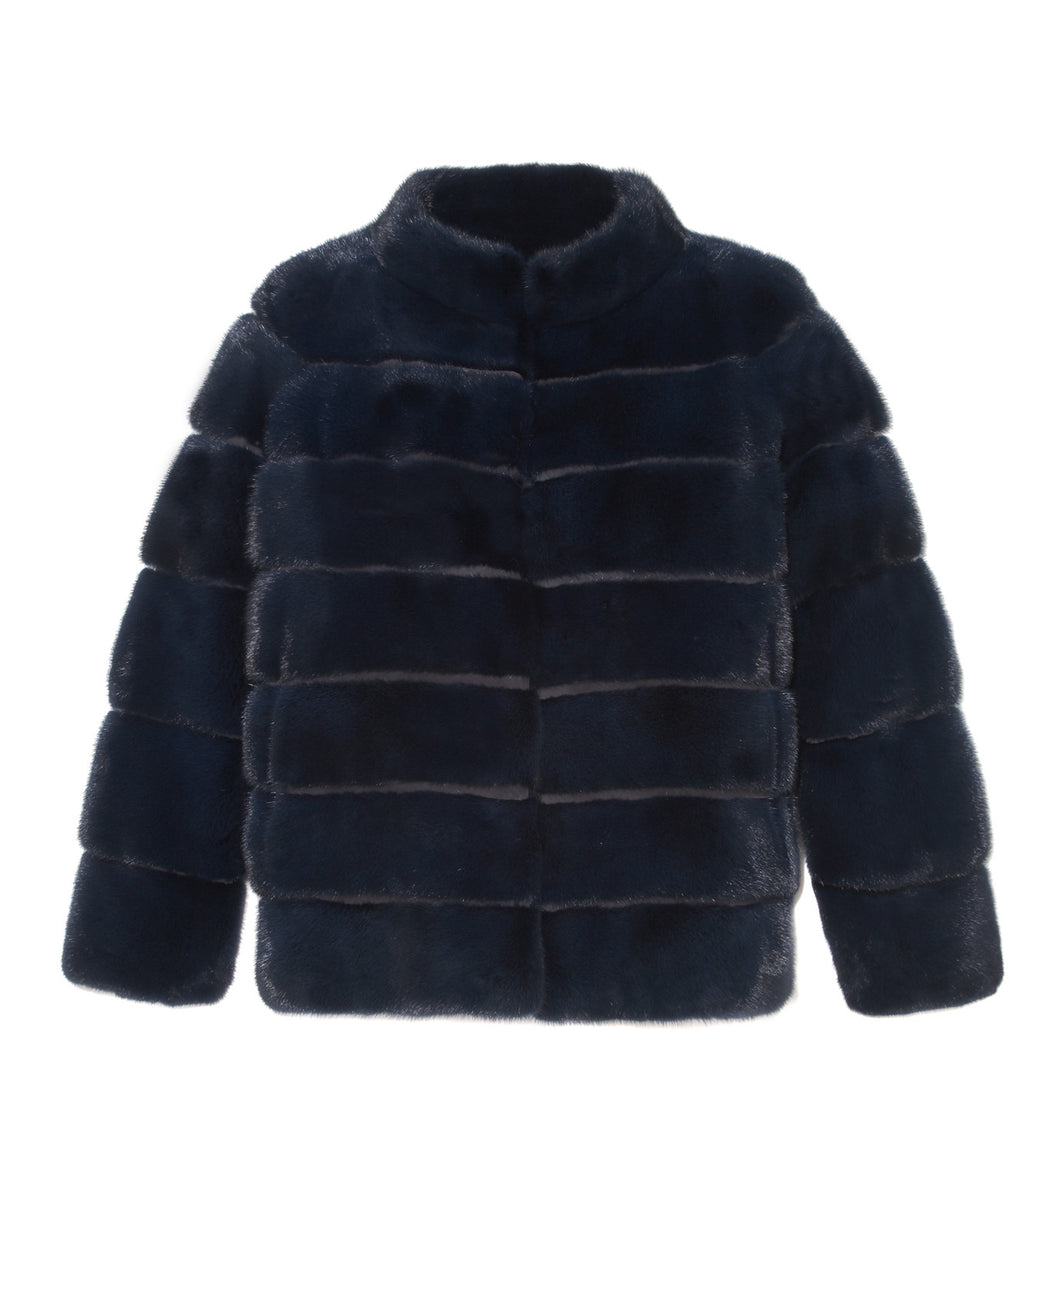 Mink Jacket in Navy Blue Color